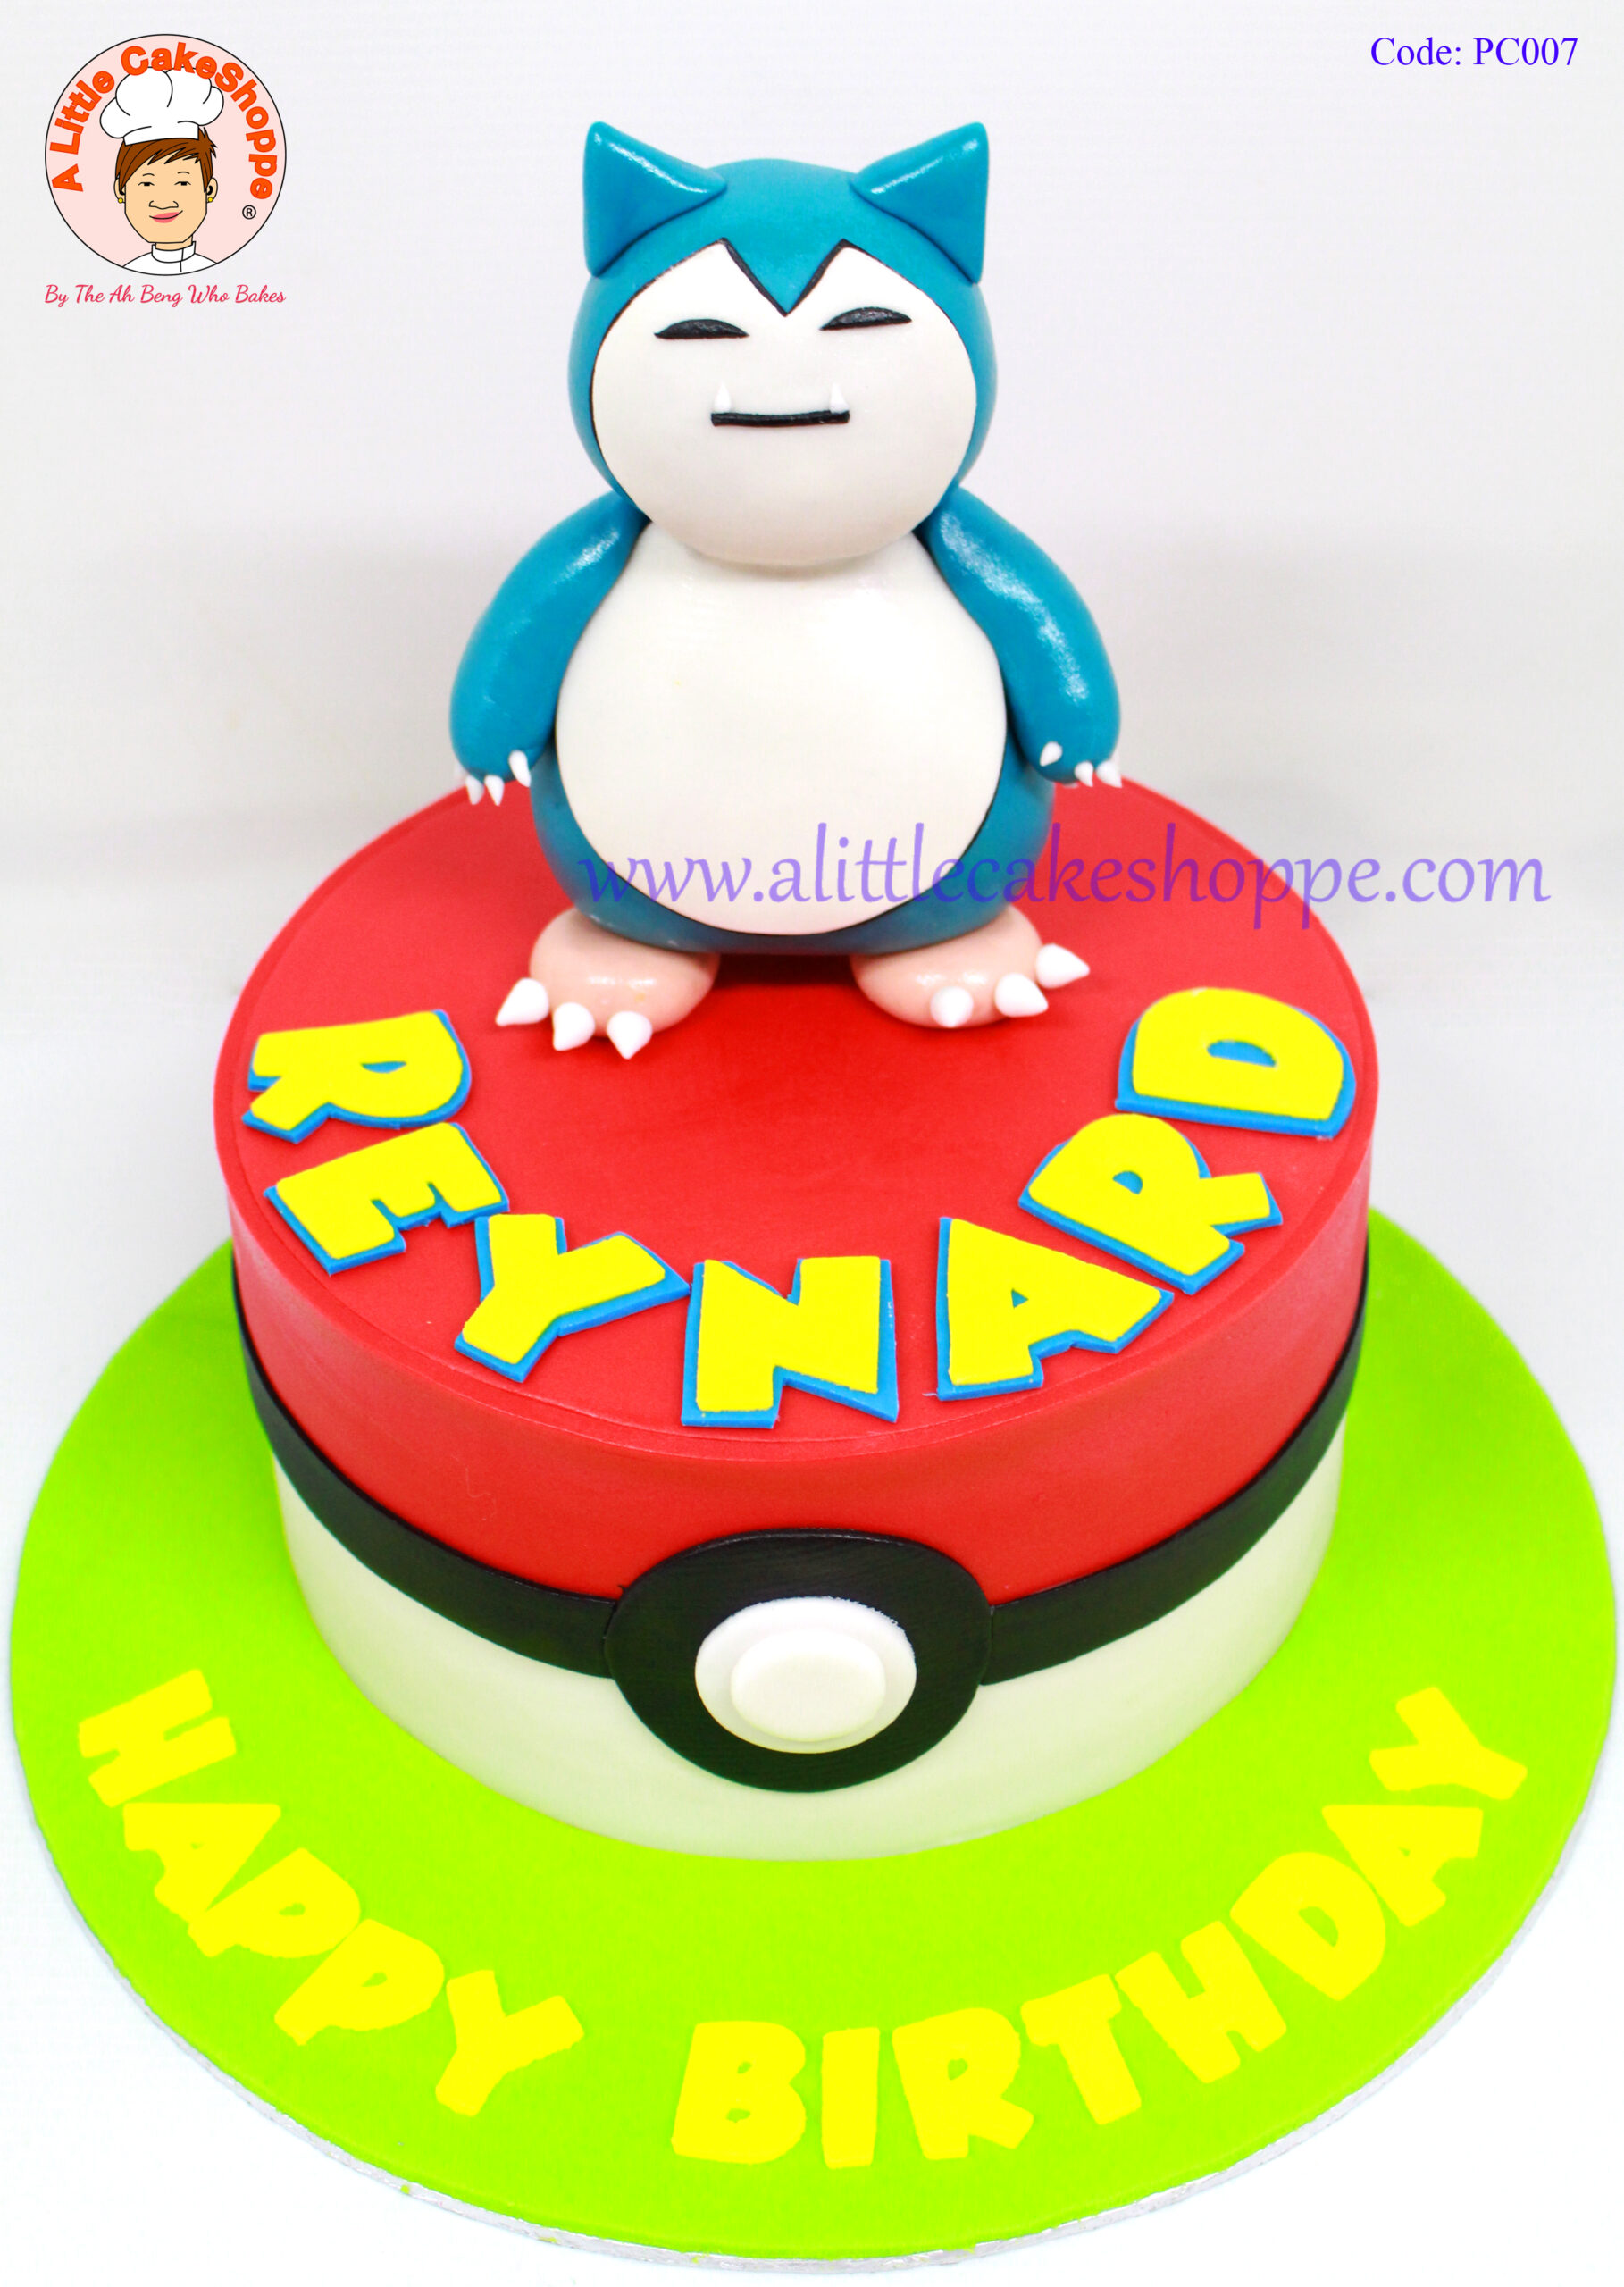 Best Customised Cake Shop Singapore custom cake 2D 3D birthday cake cupcakes desserts wedding corporate events anniversary 1st birthday 21st birthday fondant fresh cream buttercream cakes alittlecakeshoppe a little cake shoppe compliments review singapore bakers SG cake shop cakeshop ah beng who bakes pokemon snorlax